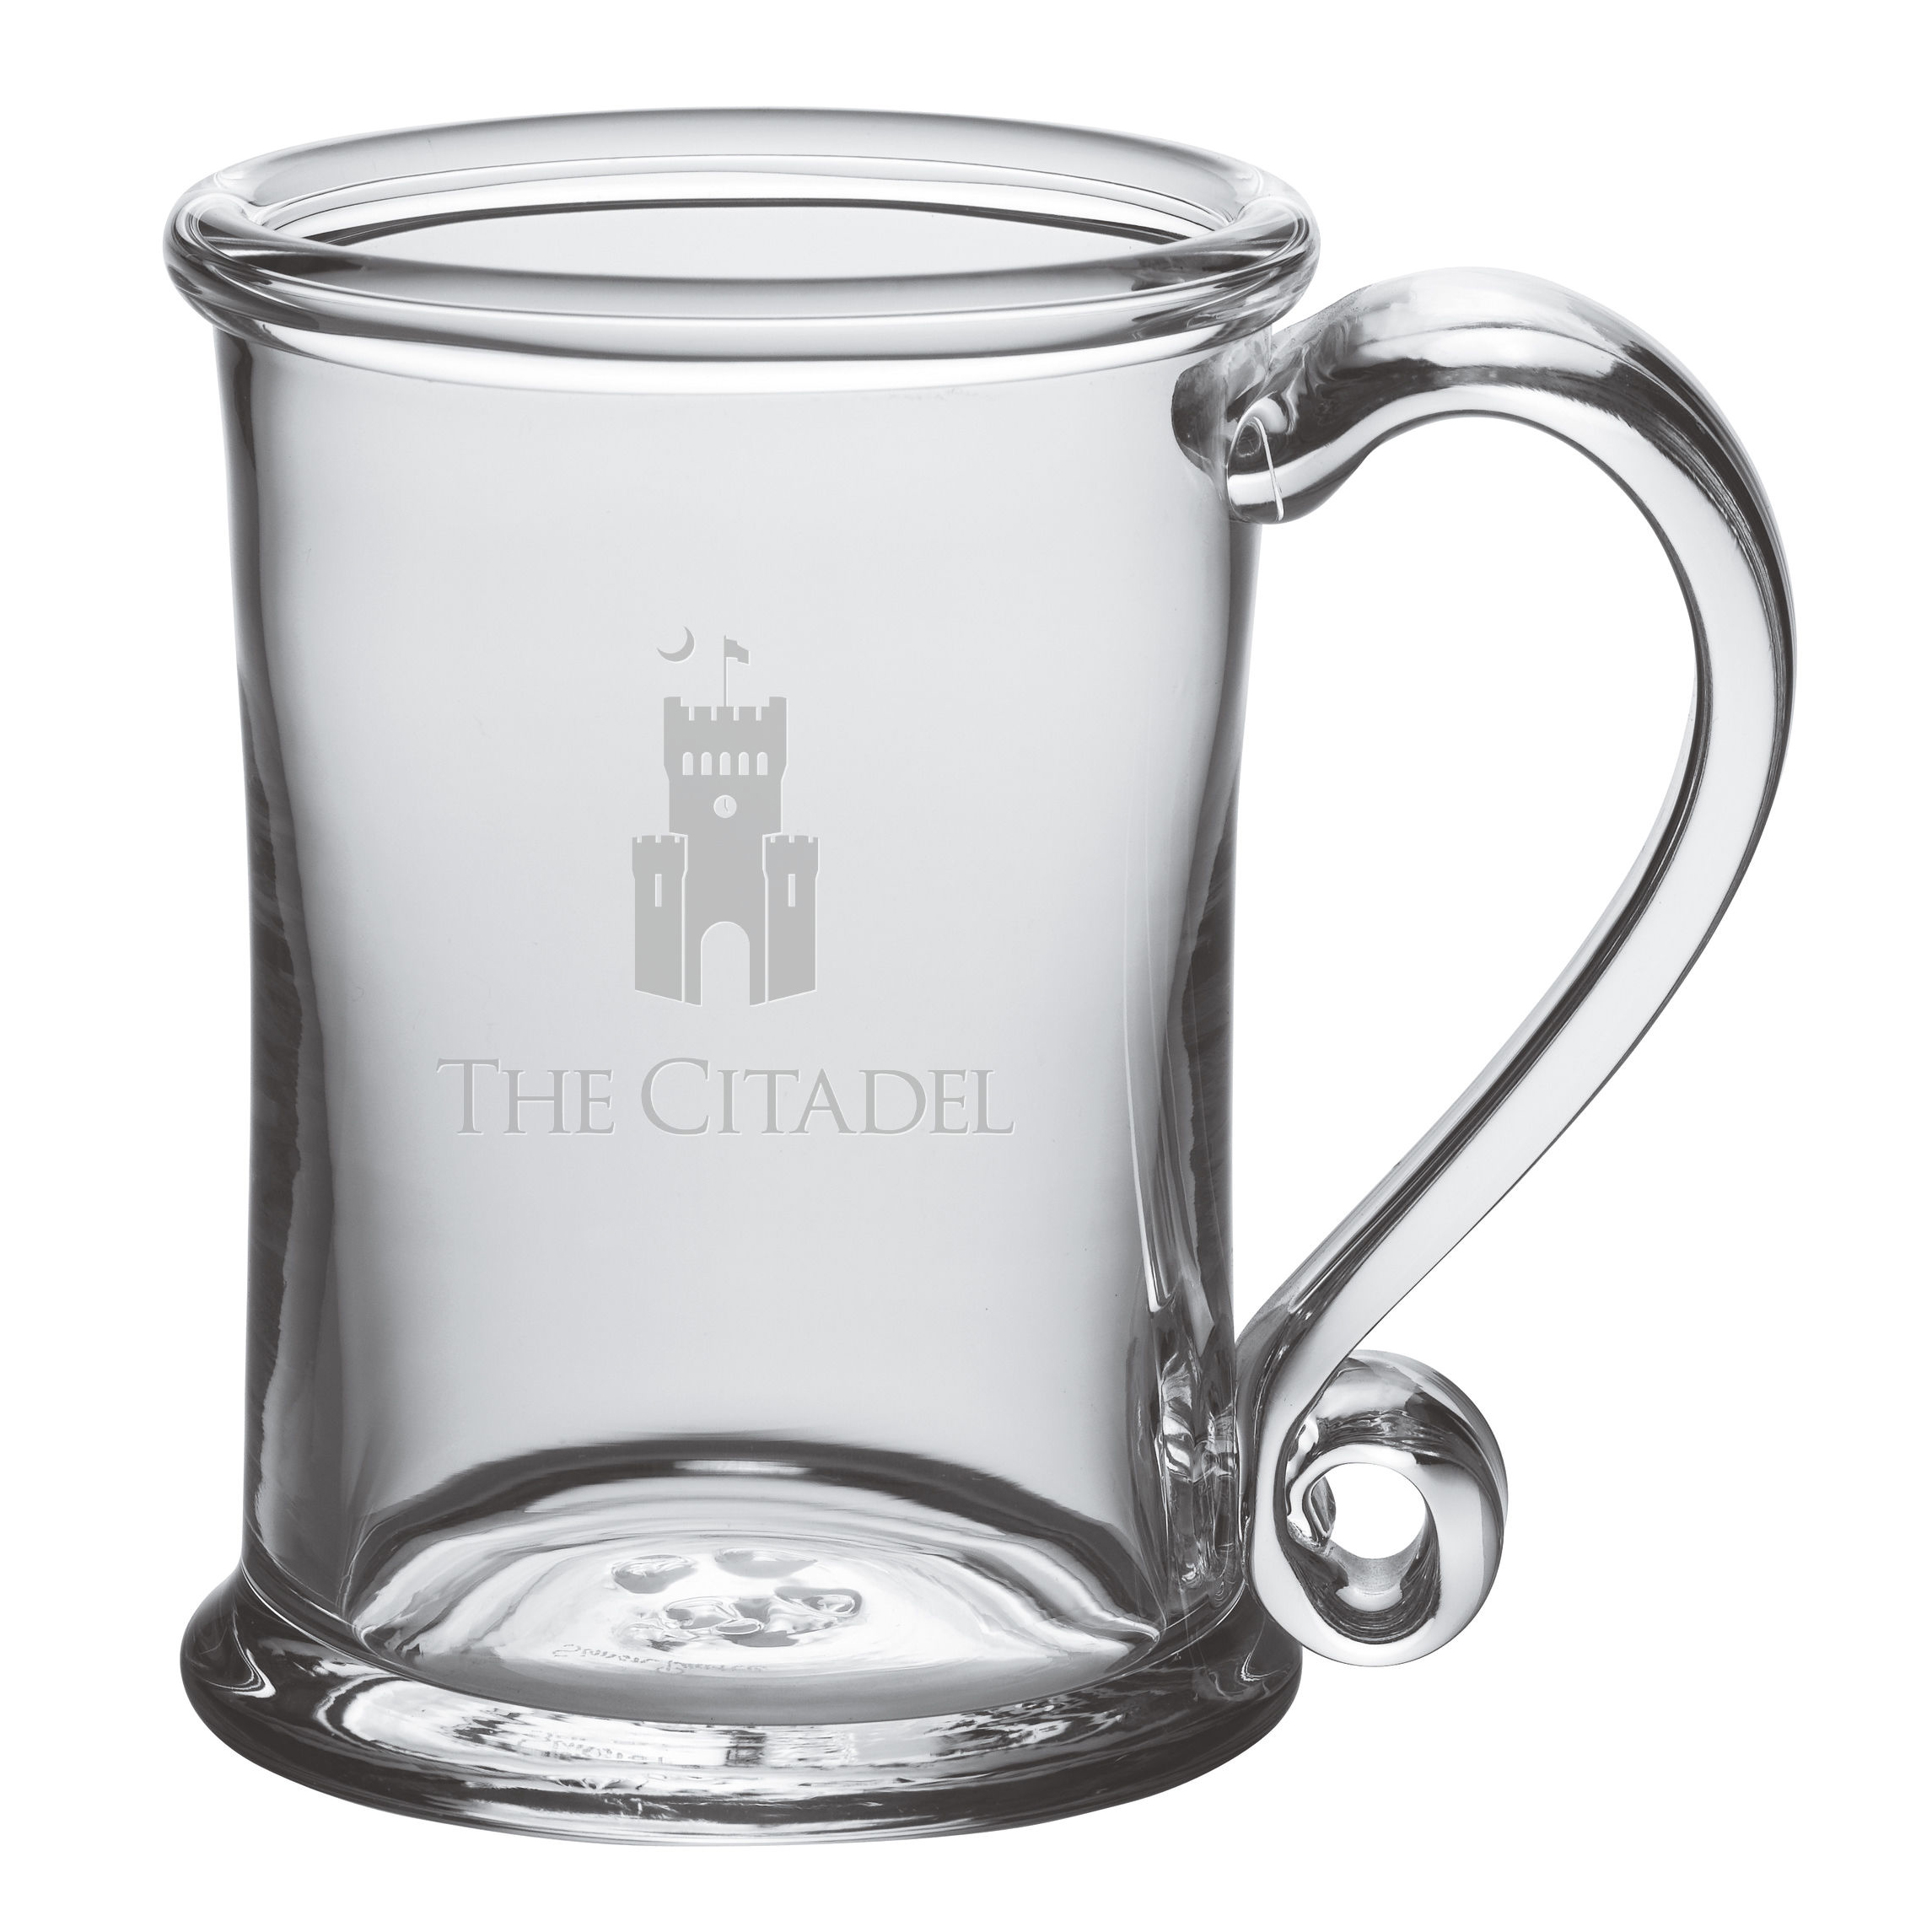 Citadel Glass Tankard by Simon Pearce